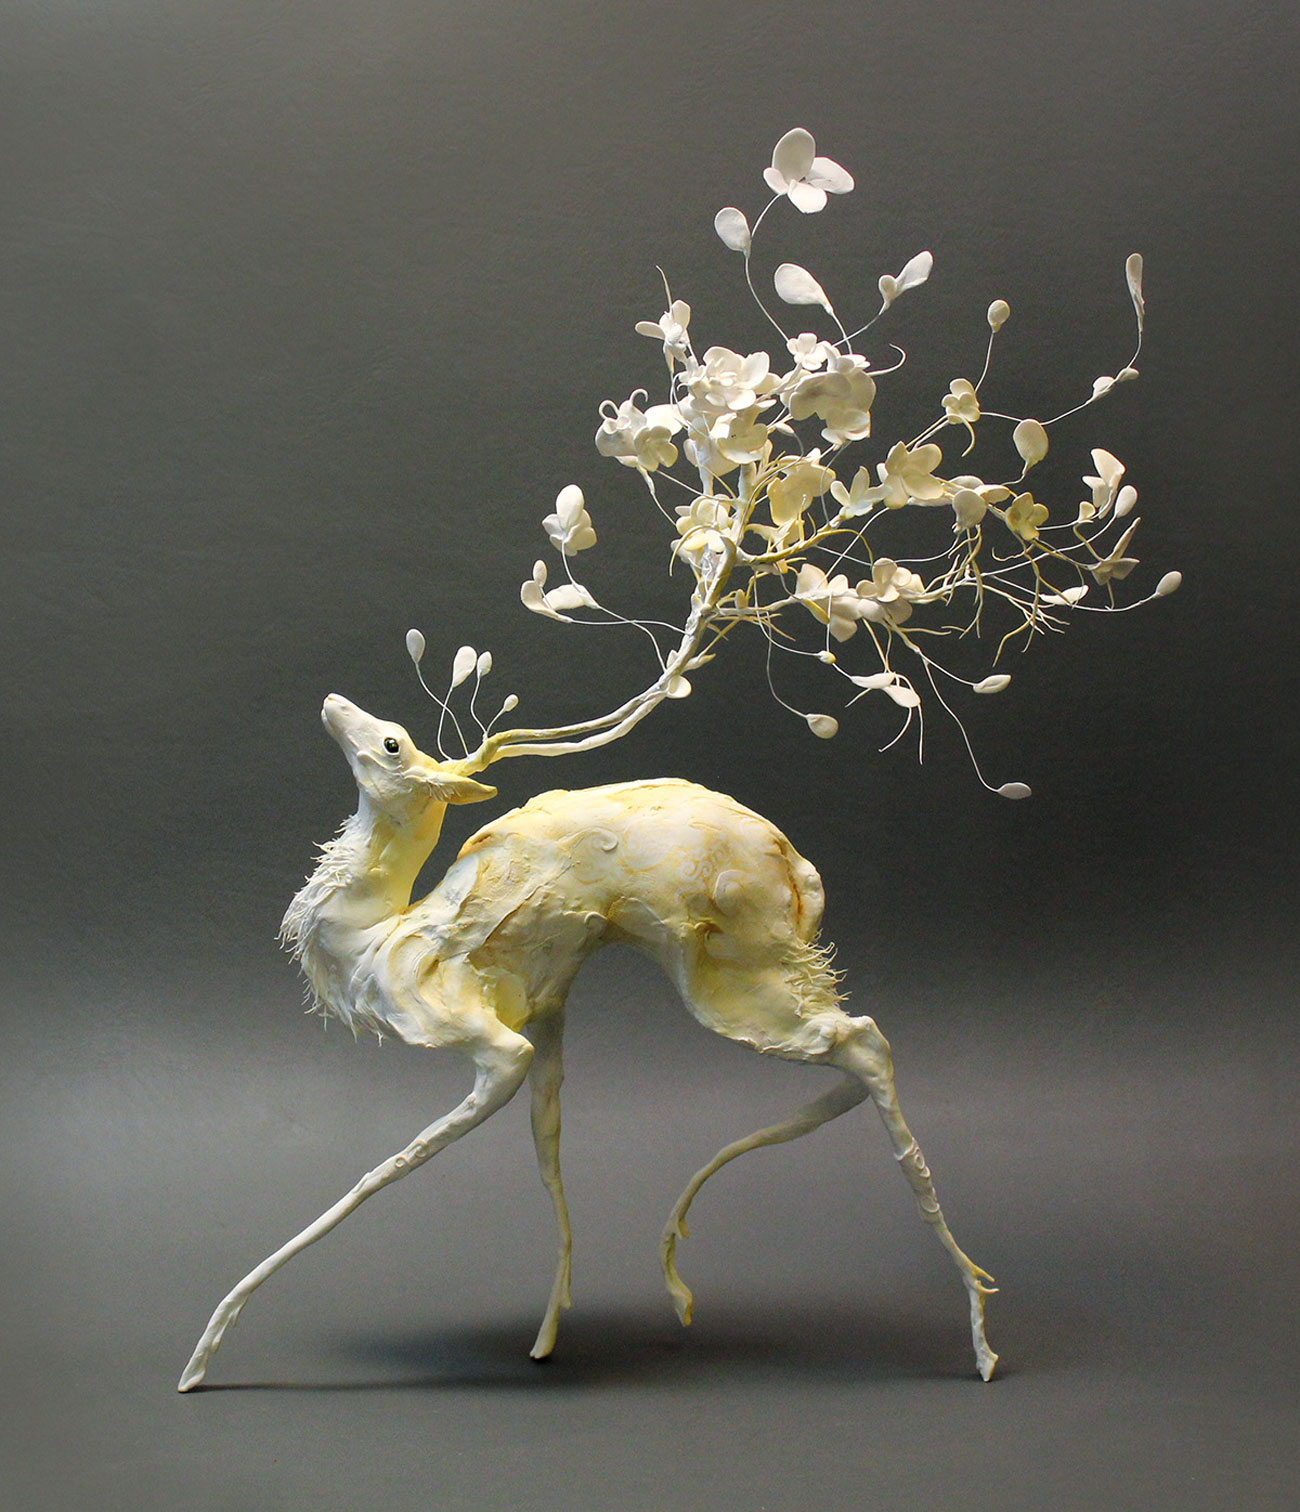 Ellen jewett deer